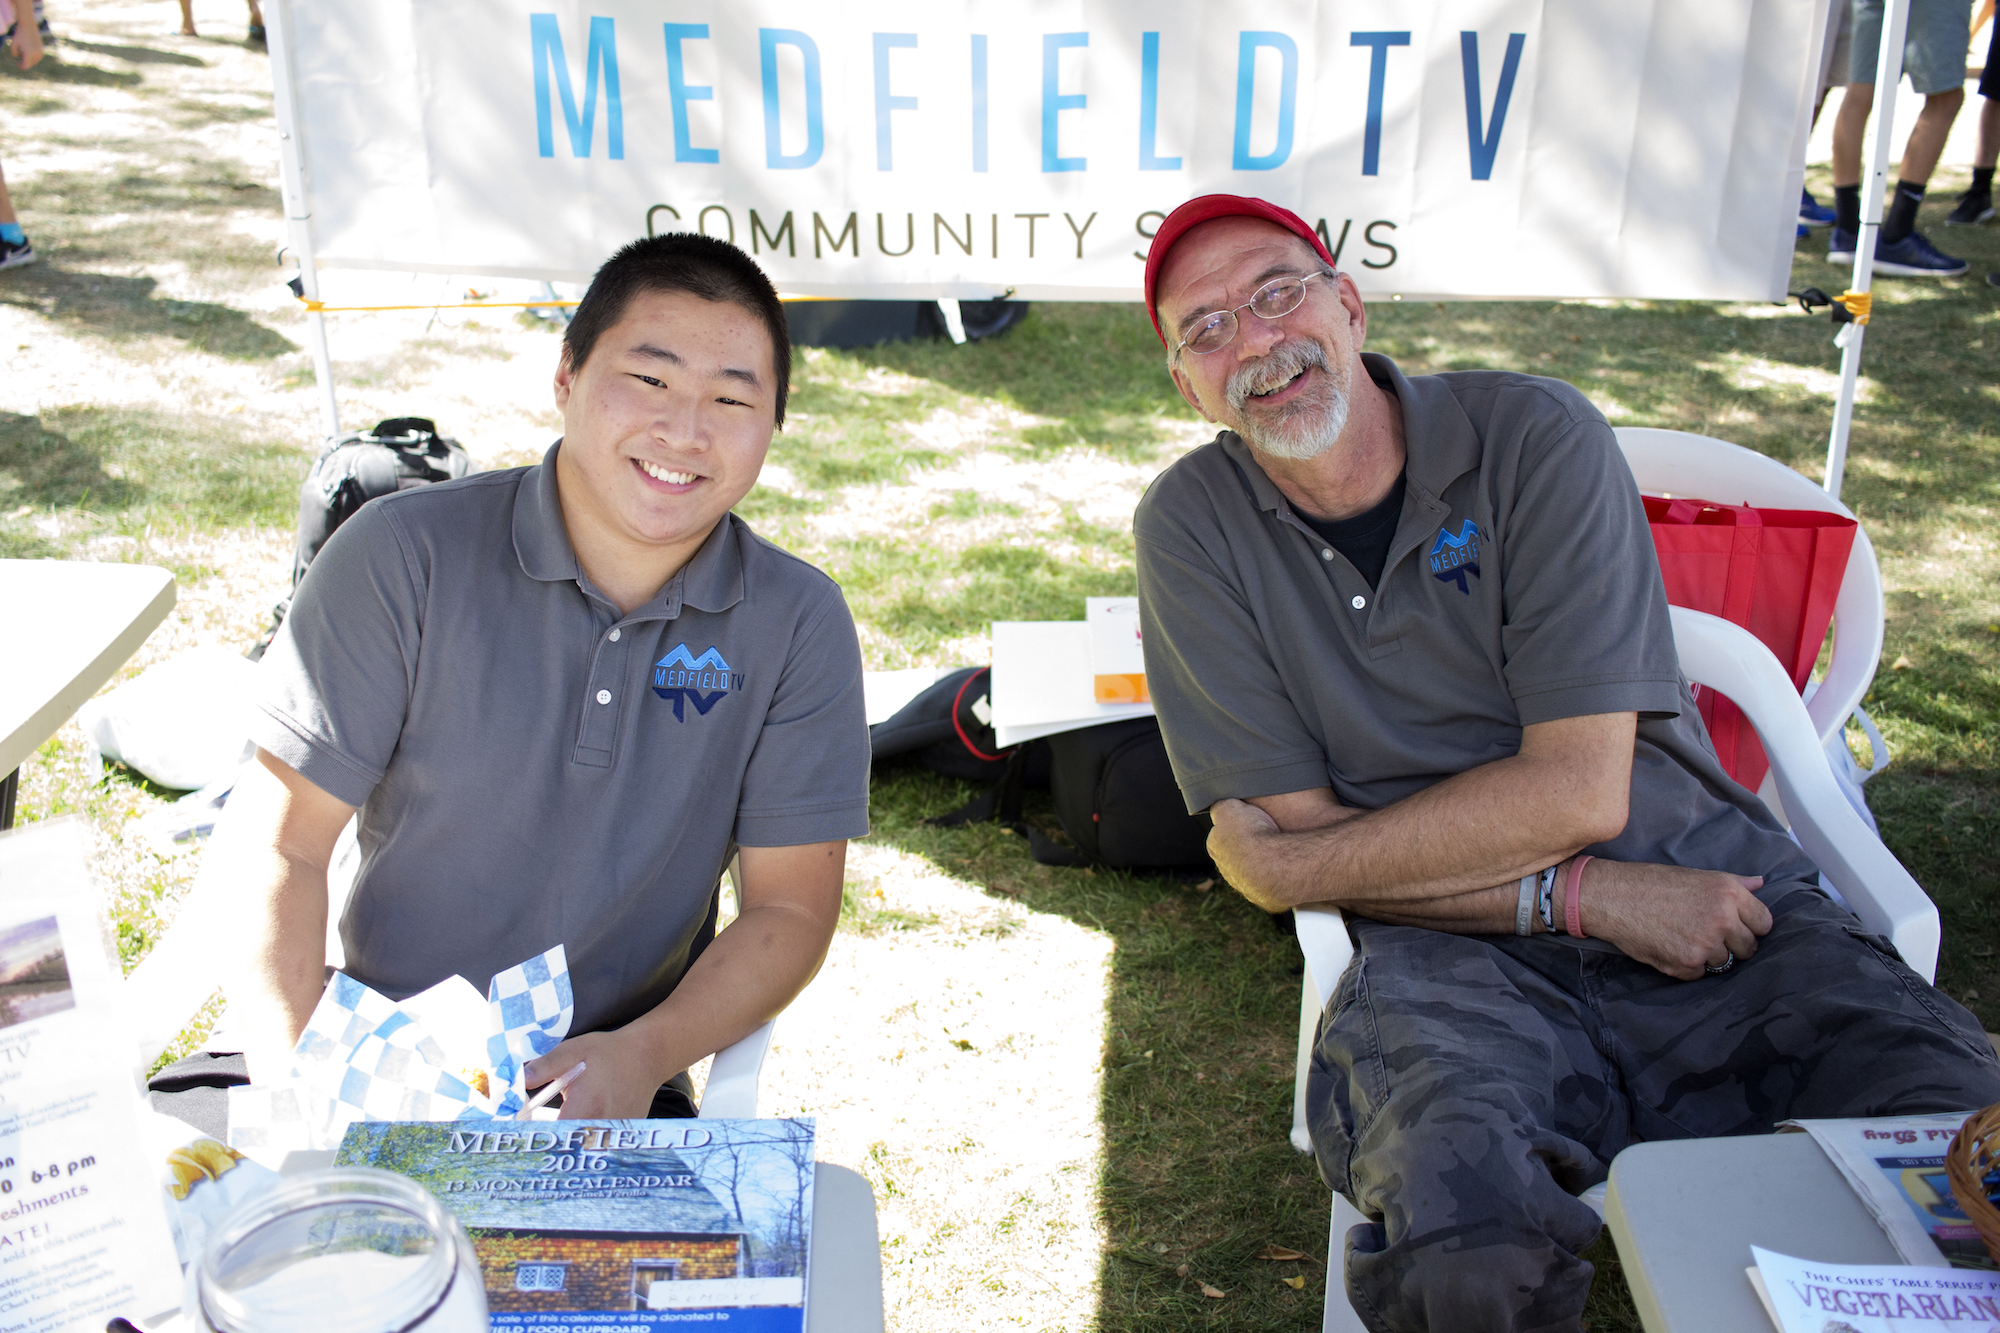 Sam and Jim represent Medfield TV, a booth promoting our local cable station.